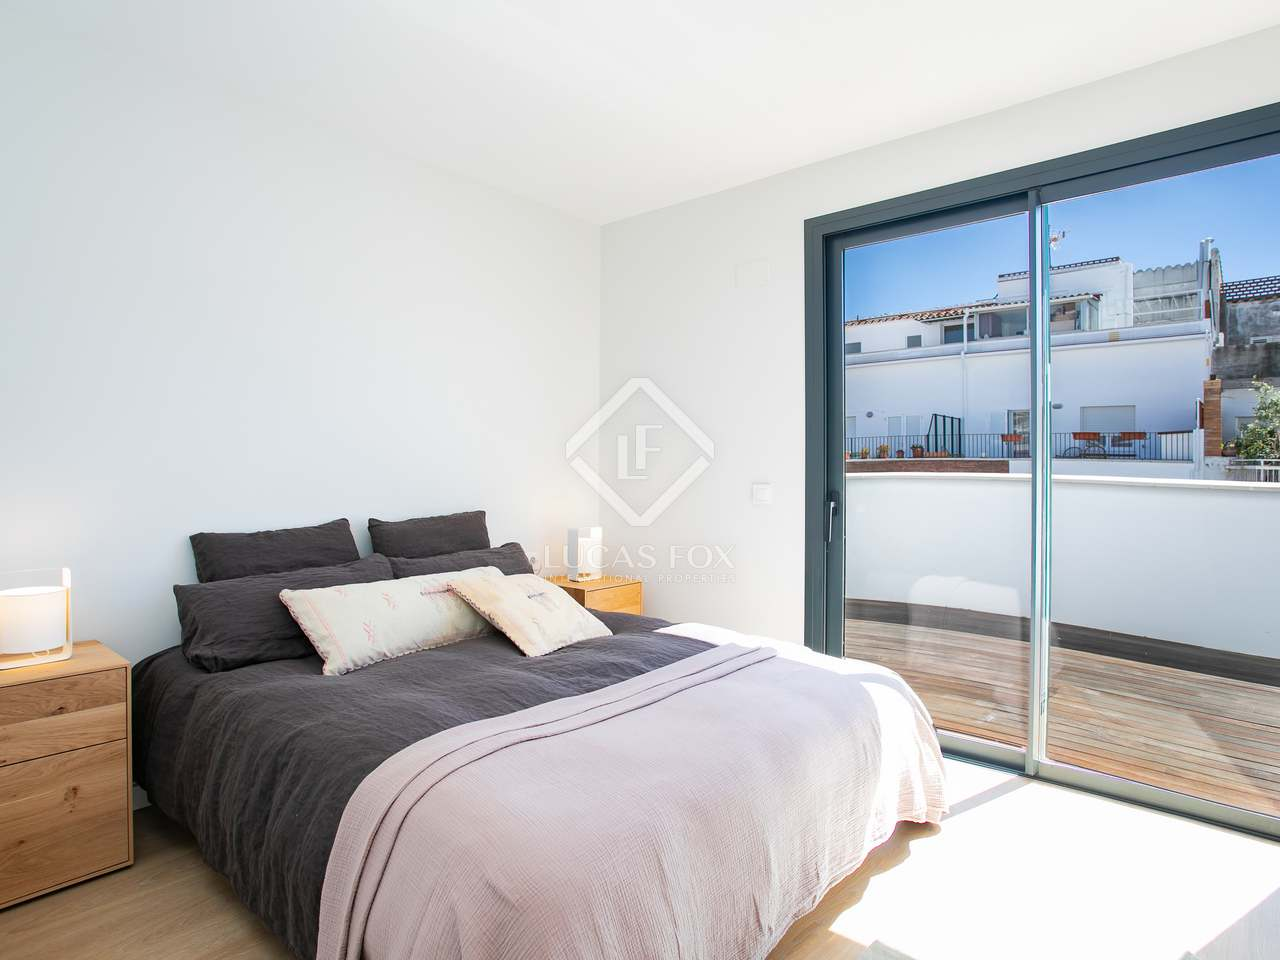 85m 178 apartment with 44m 178 terrace for sale in sitges town 17077 | 925a579abb